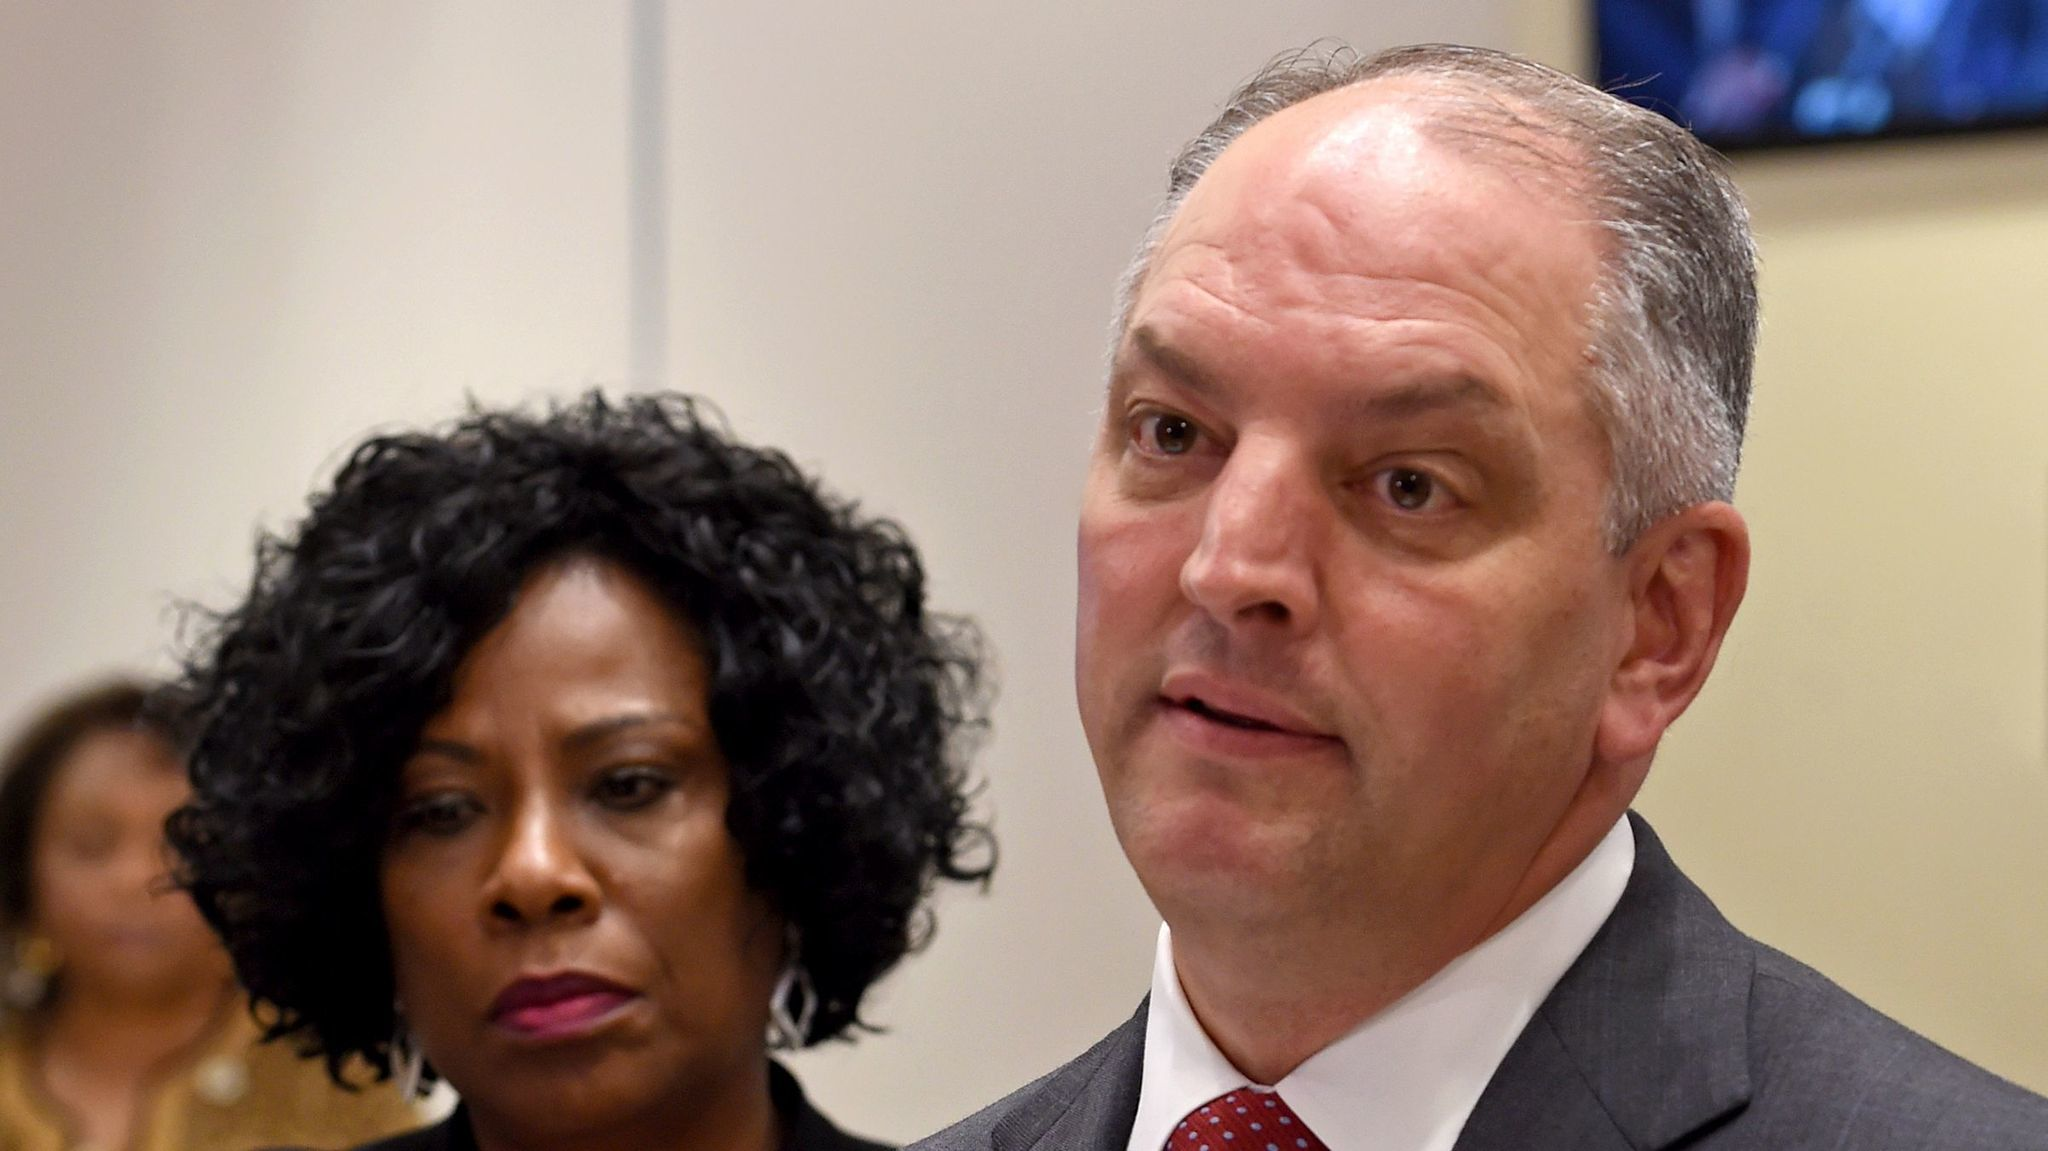 Louisiana Gov. John Bel Edwards with Baton Rouge Mayor Sharon Weston Broome last month.